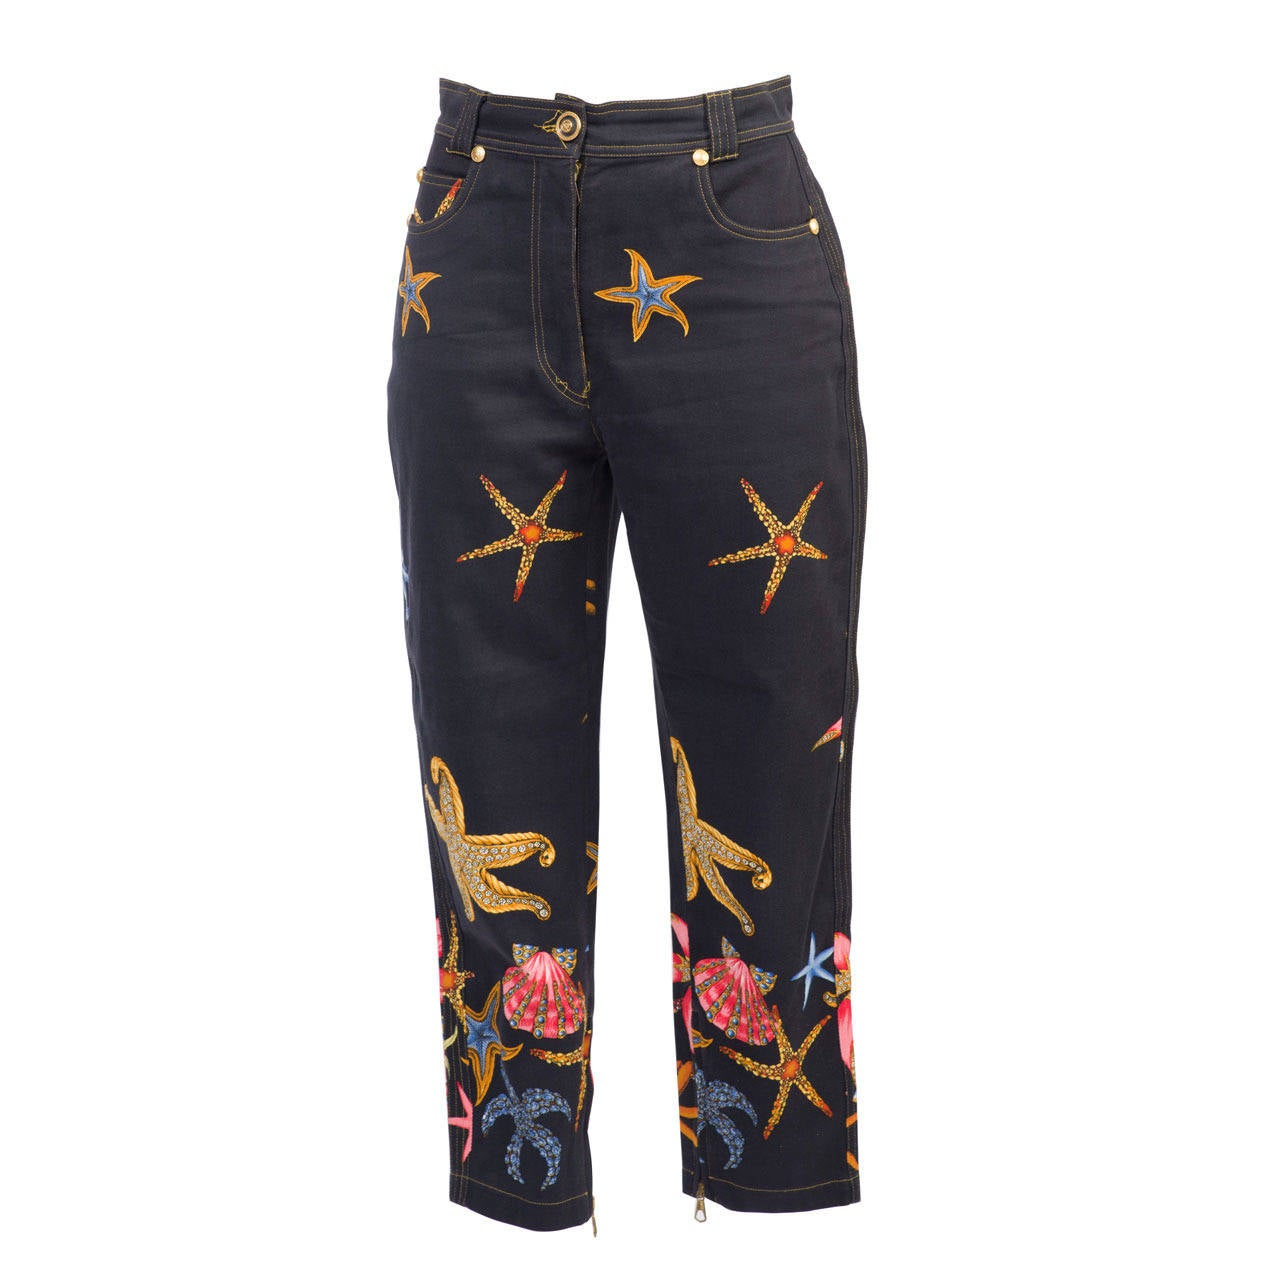 1990s Gianni Versace Vintage Iconic Trousers For Sale